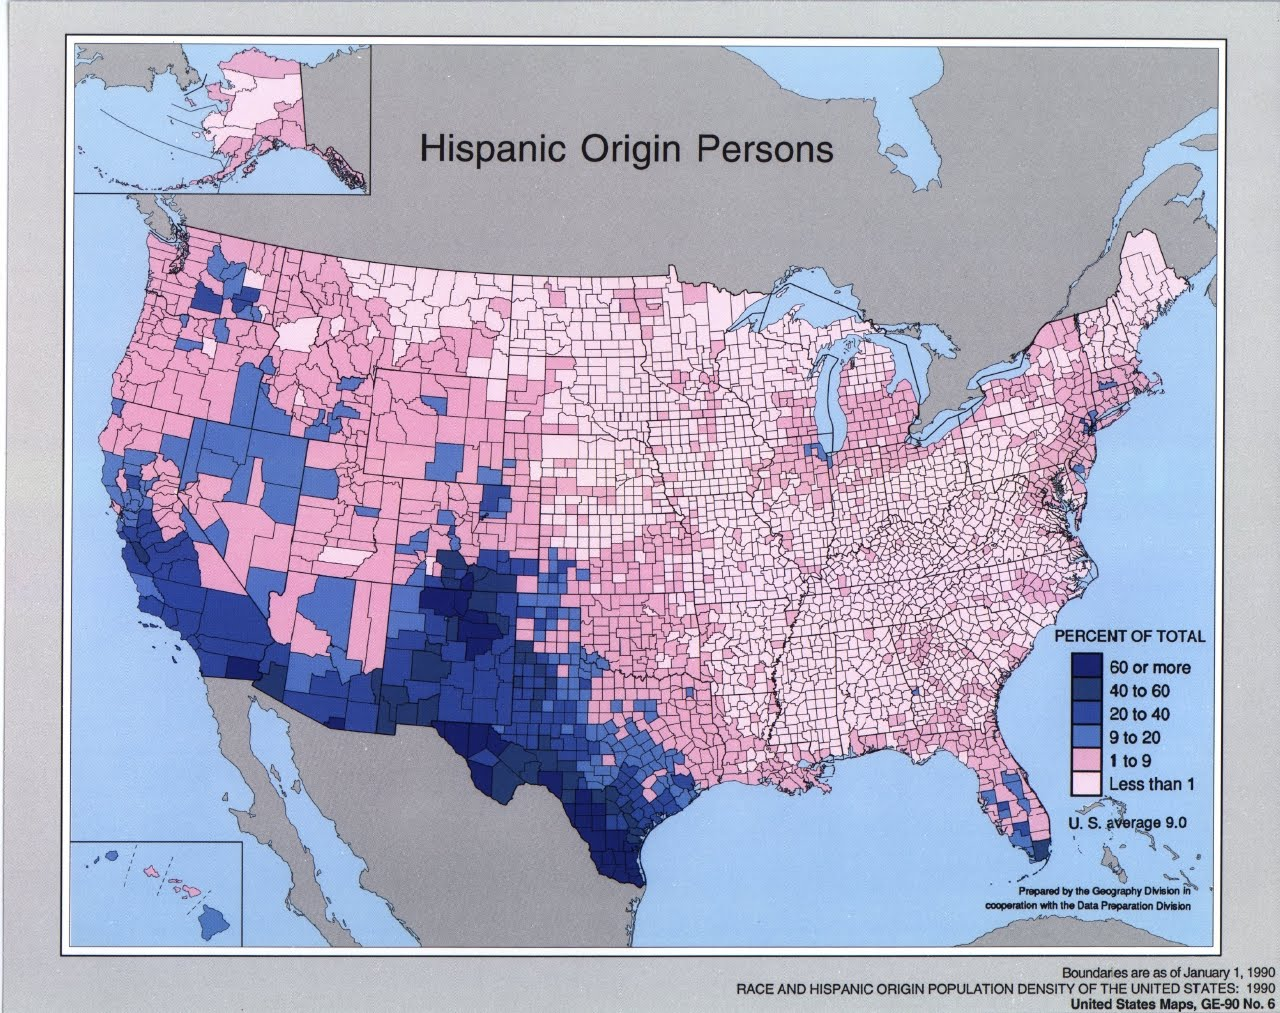 i searched us census map on google and this was one of the interesting map that caught my eye